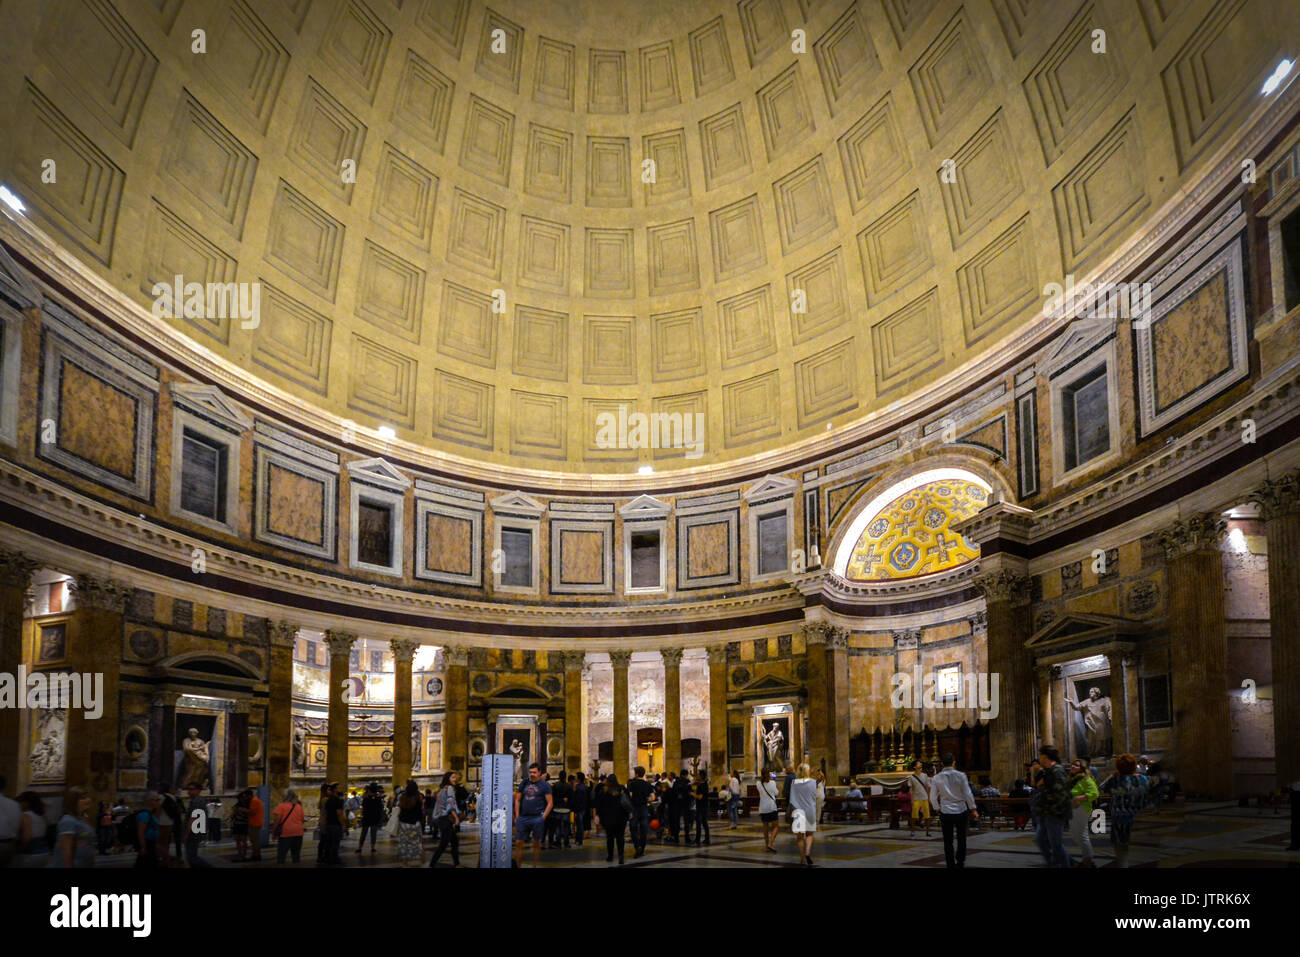 Interior shot in the evening at the ancient Pantheon in Rome Italy Stock Photo